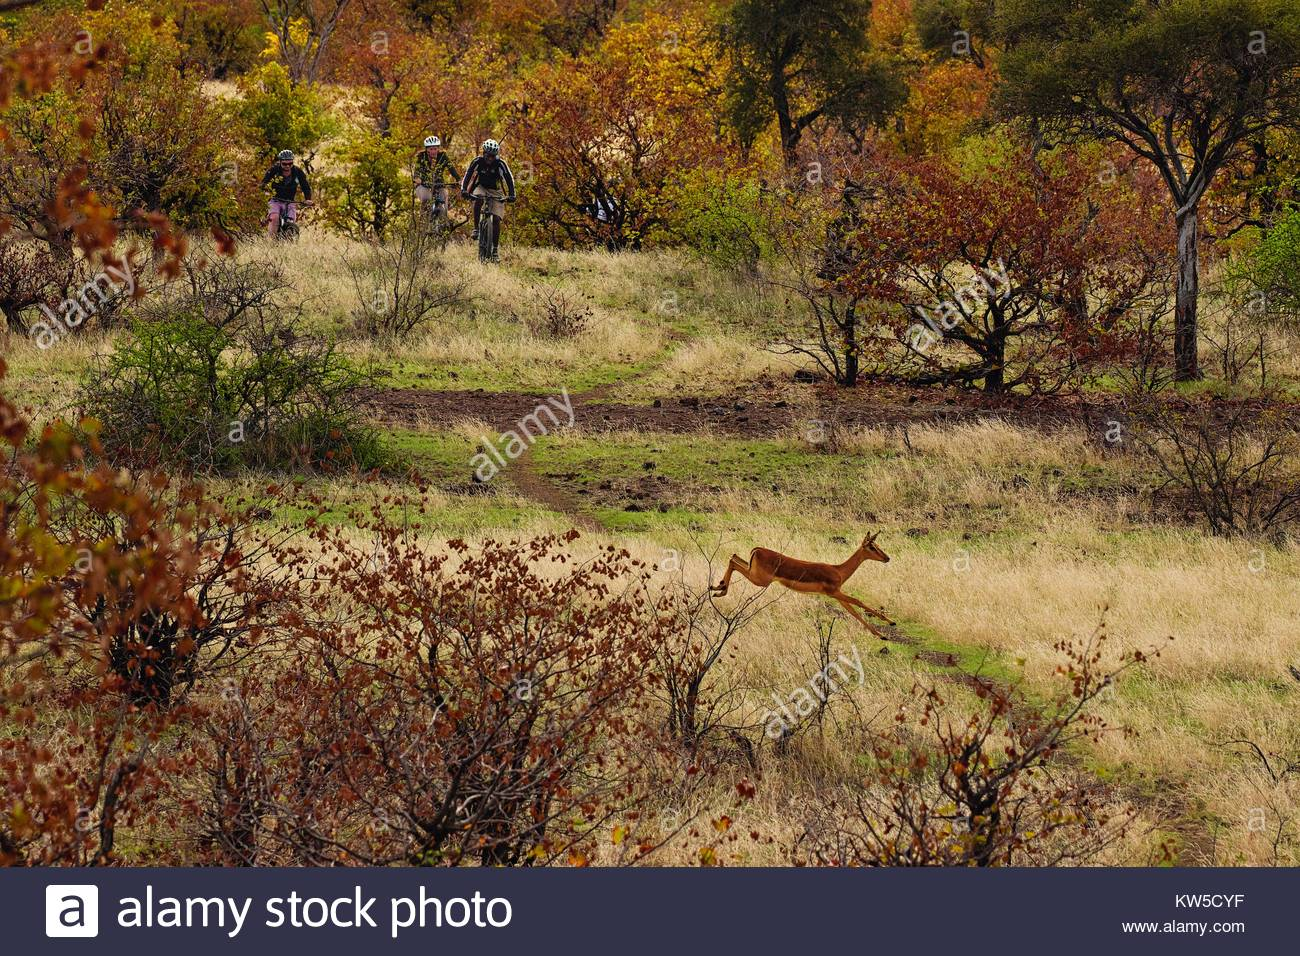 Bikers in the Mashatu Game Reserve cross paths with wildlife. - Stock Image